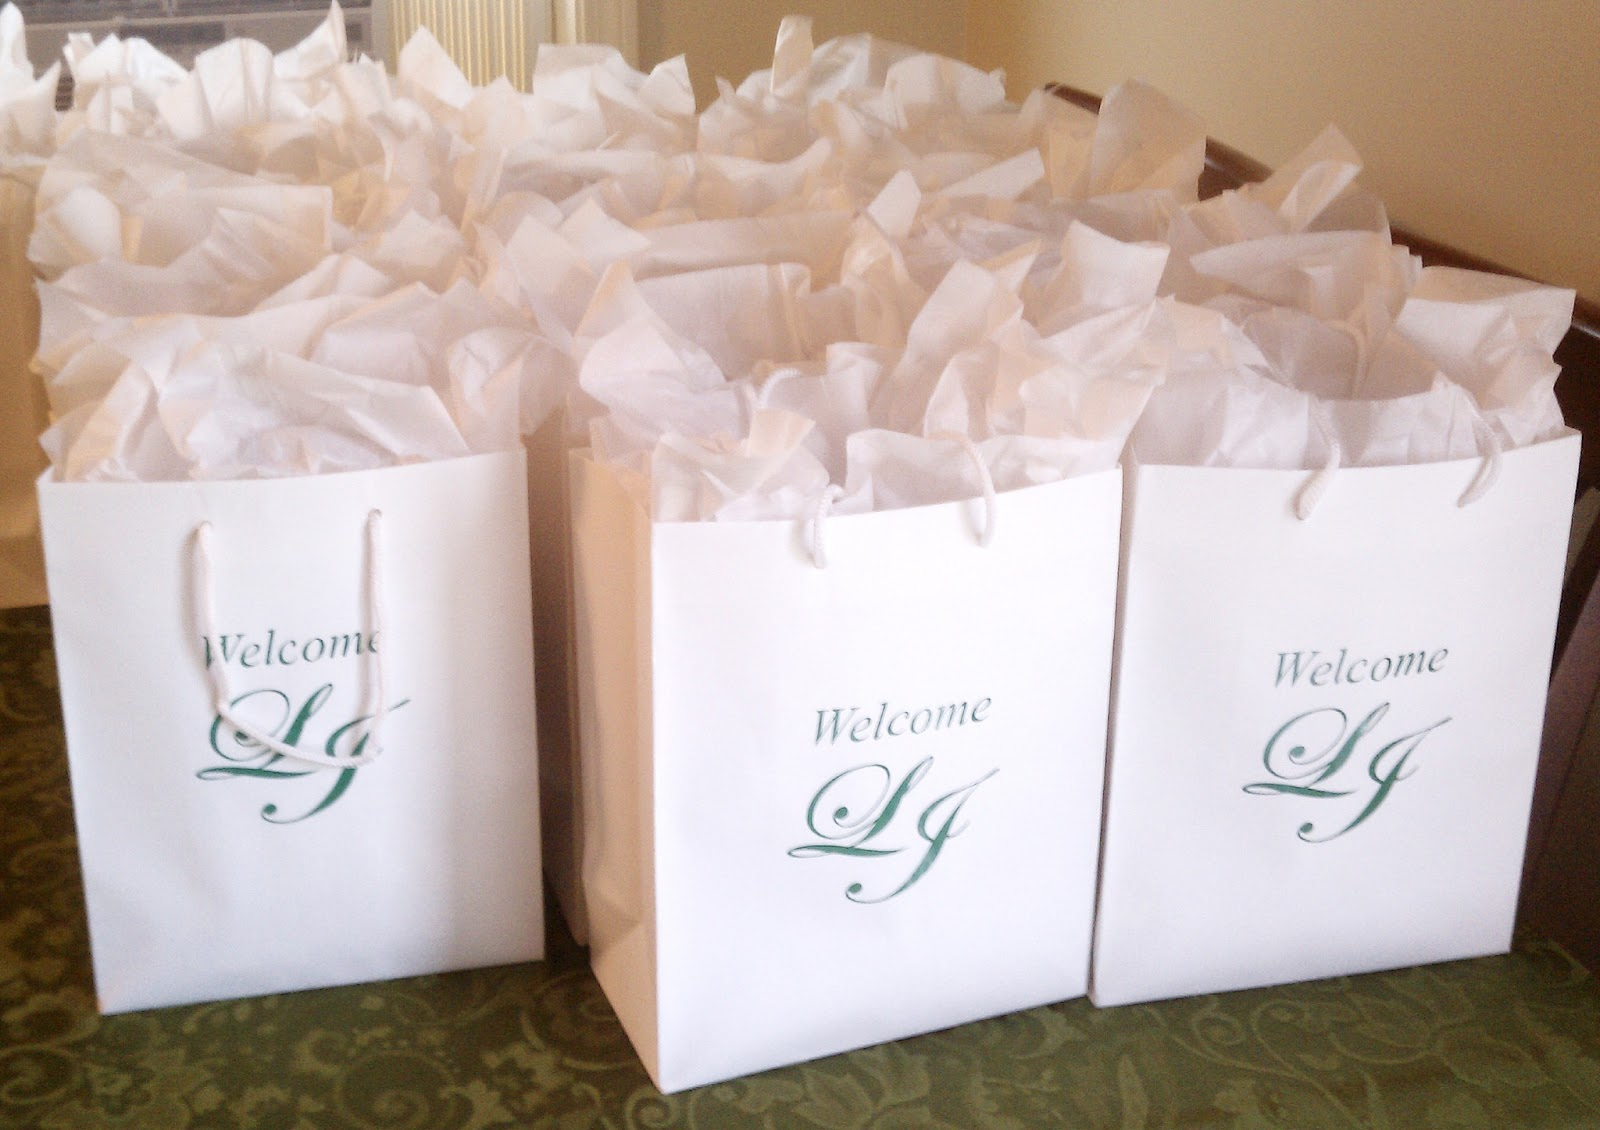 Gift Bag Ideas For Wedding Guests: Eutopia Events: Wedding Day Welcome Bags